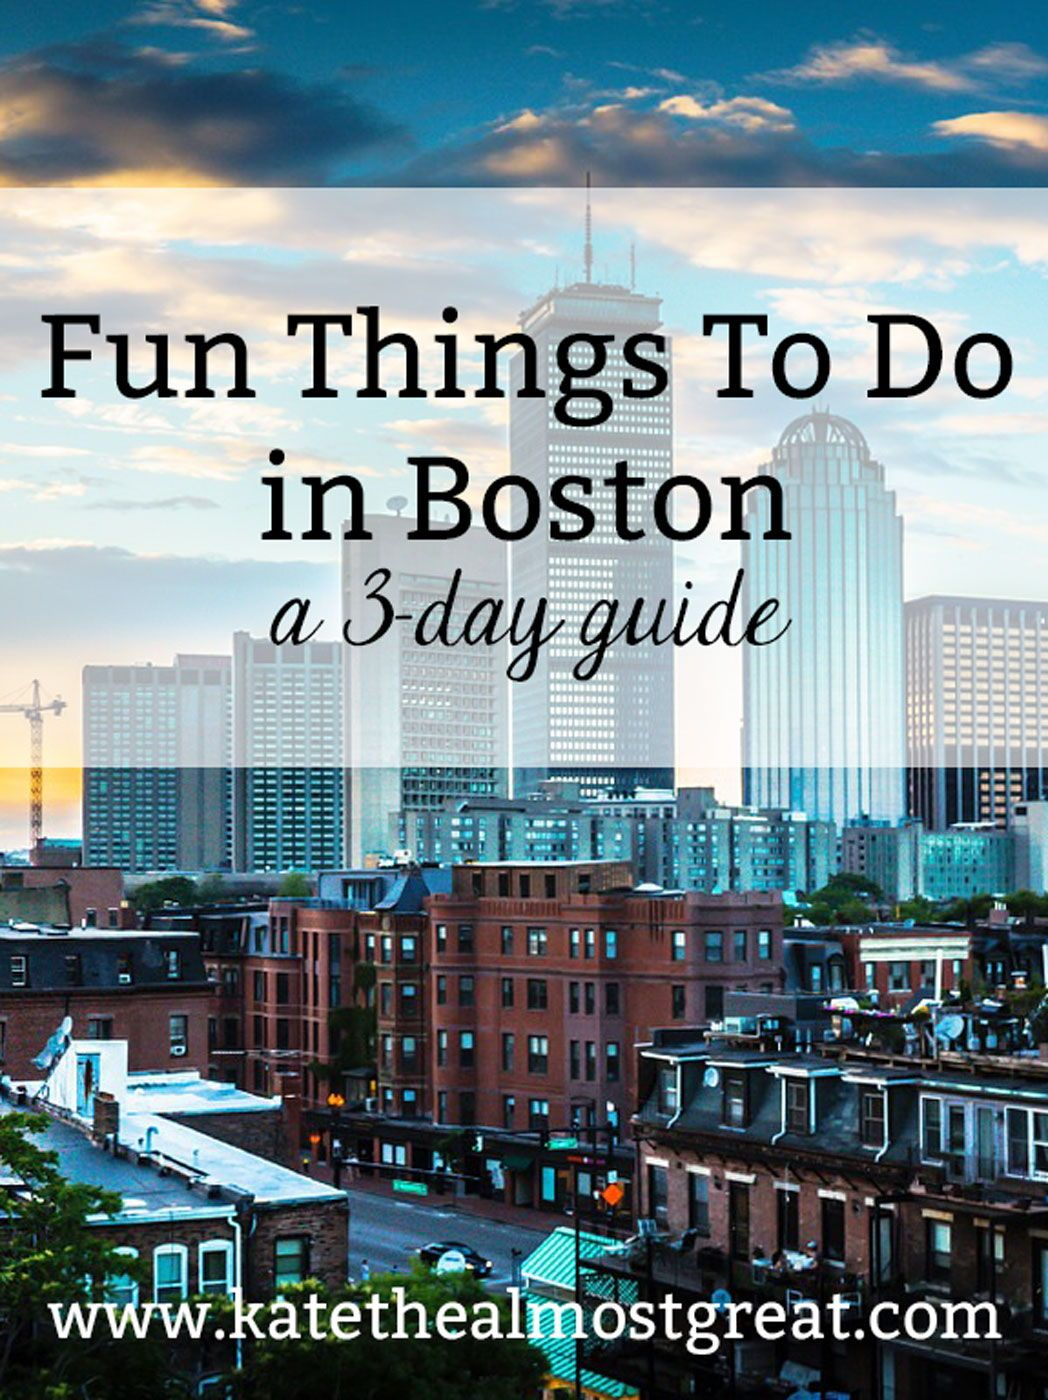 Fun Things To Do In Boston A 3 Day Guide With Images Boston